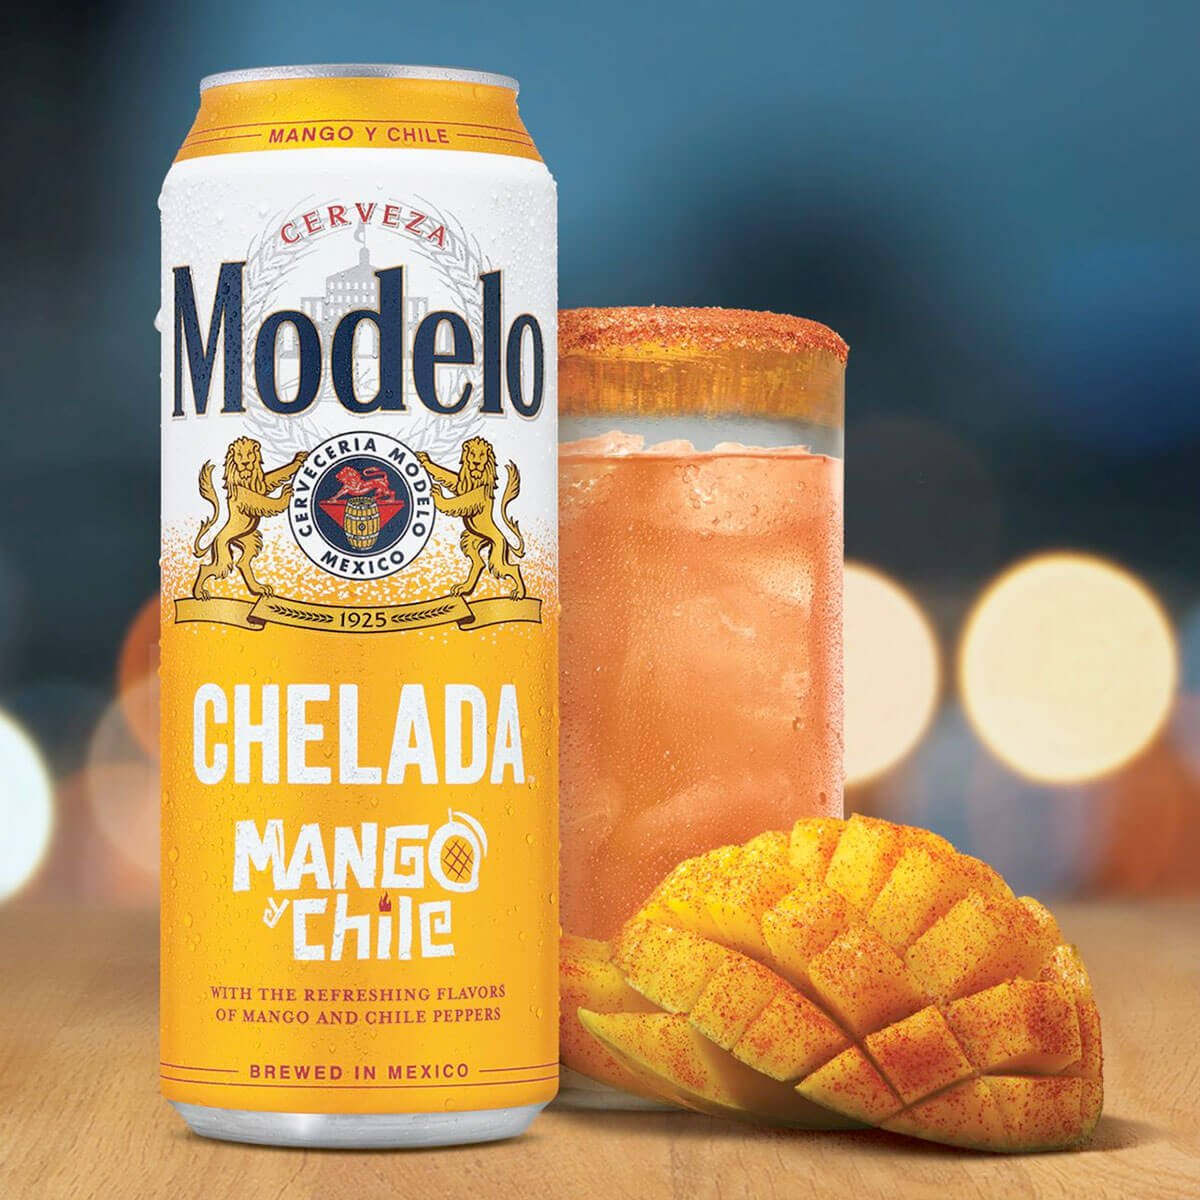 Constellation Brands Releases New Modelo Chelada Mango Y Chile Absolute Beer